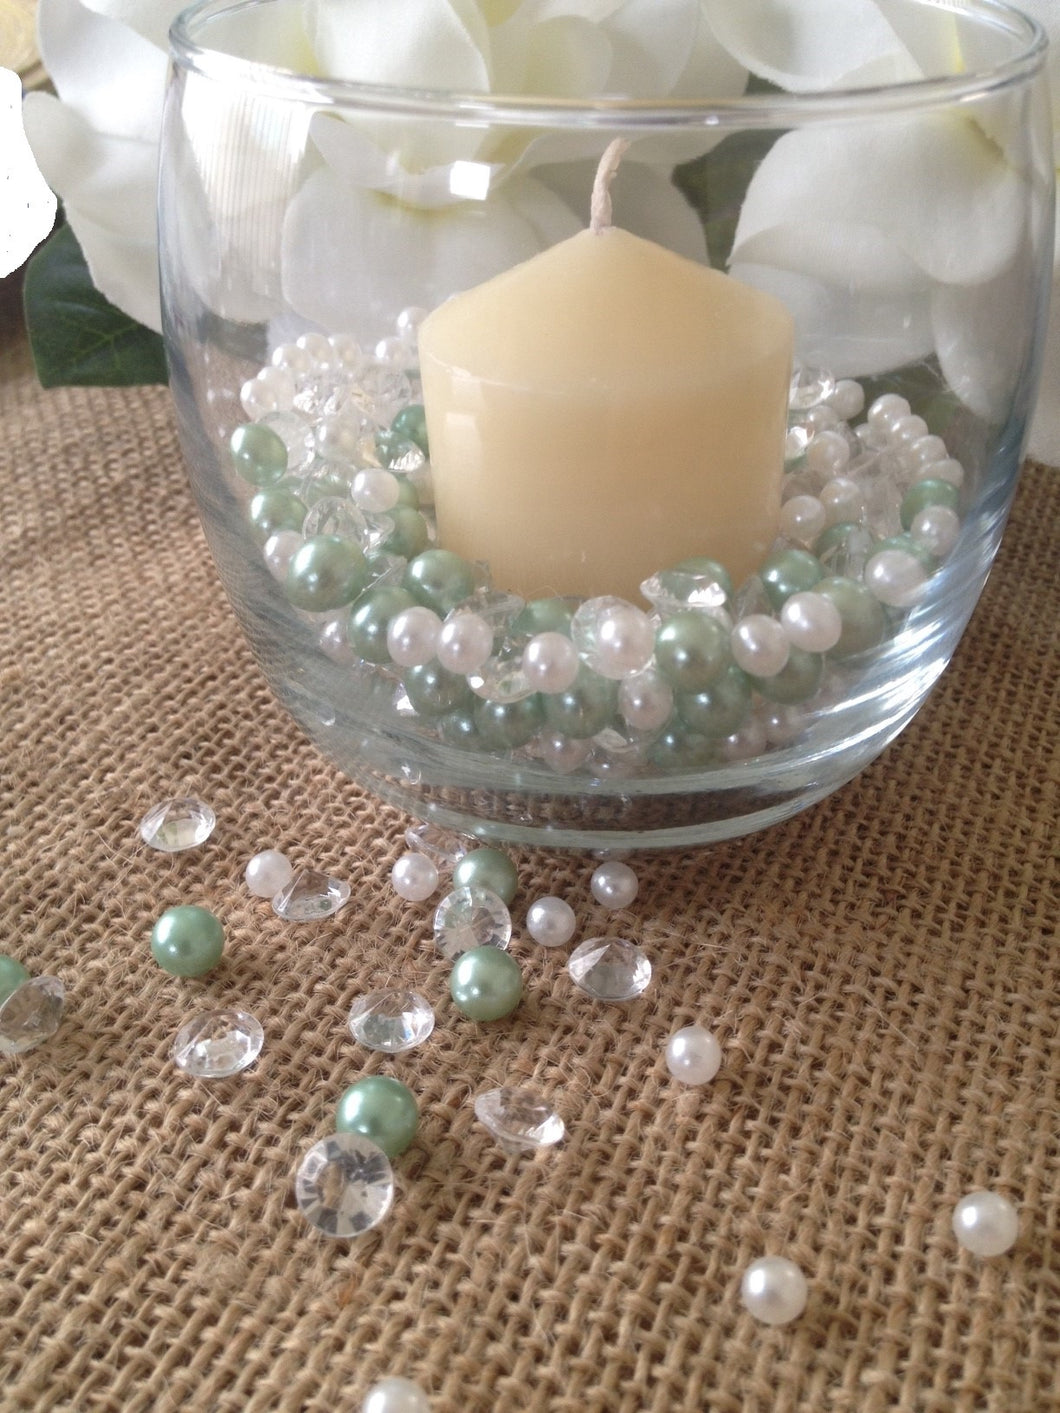 500pcs Pearls & Diamonds Seafoam Green and White Pearls For Candle Fillers, Table Scatters